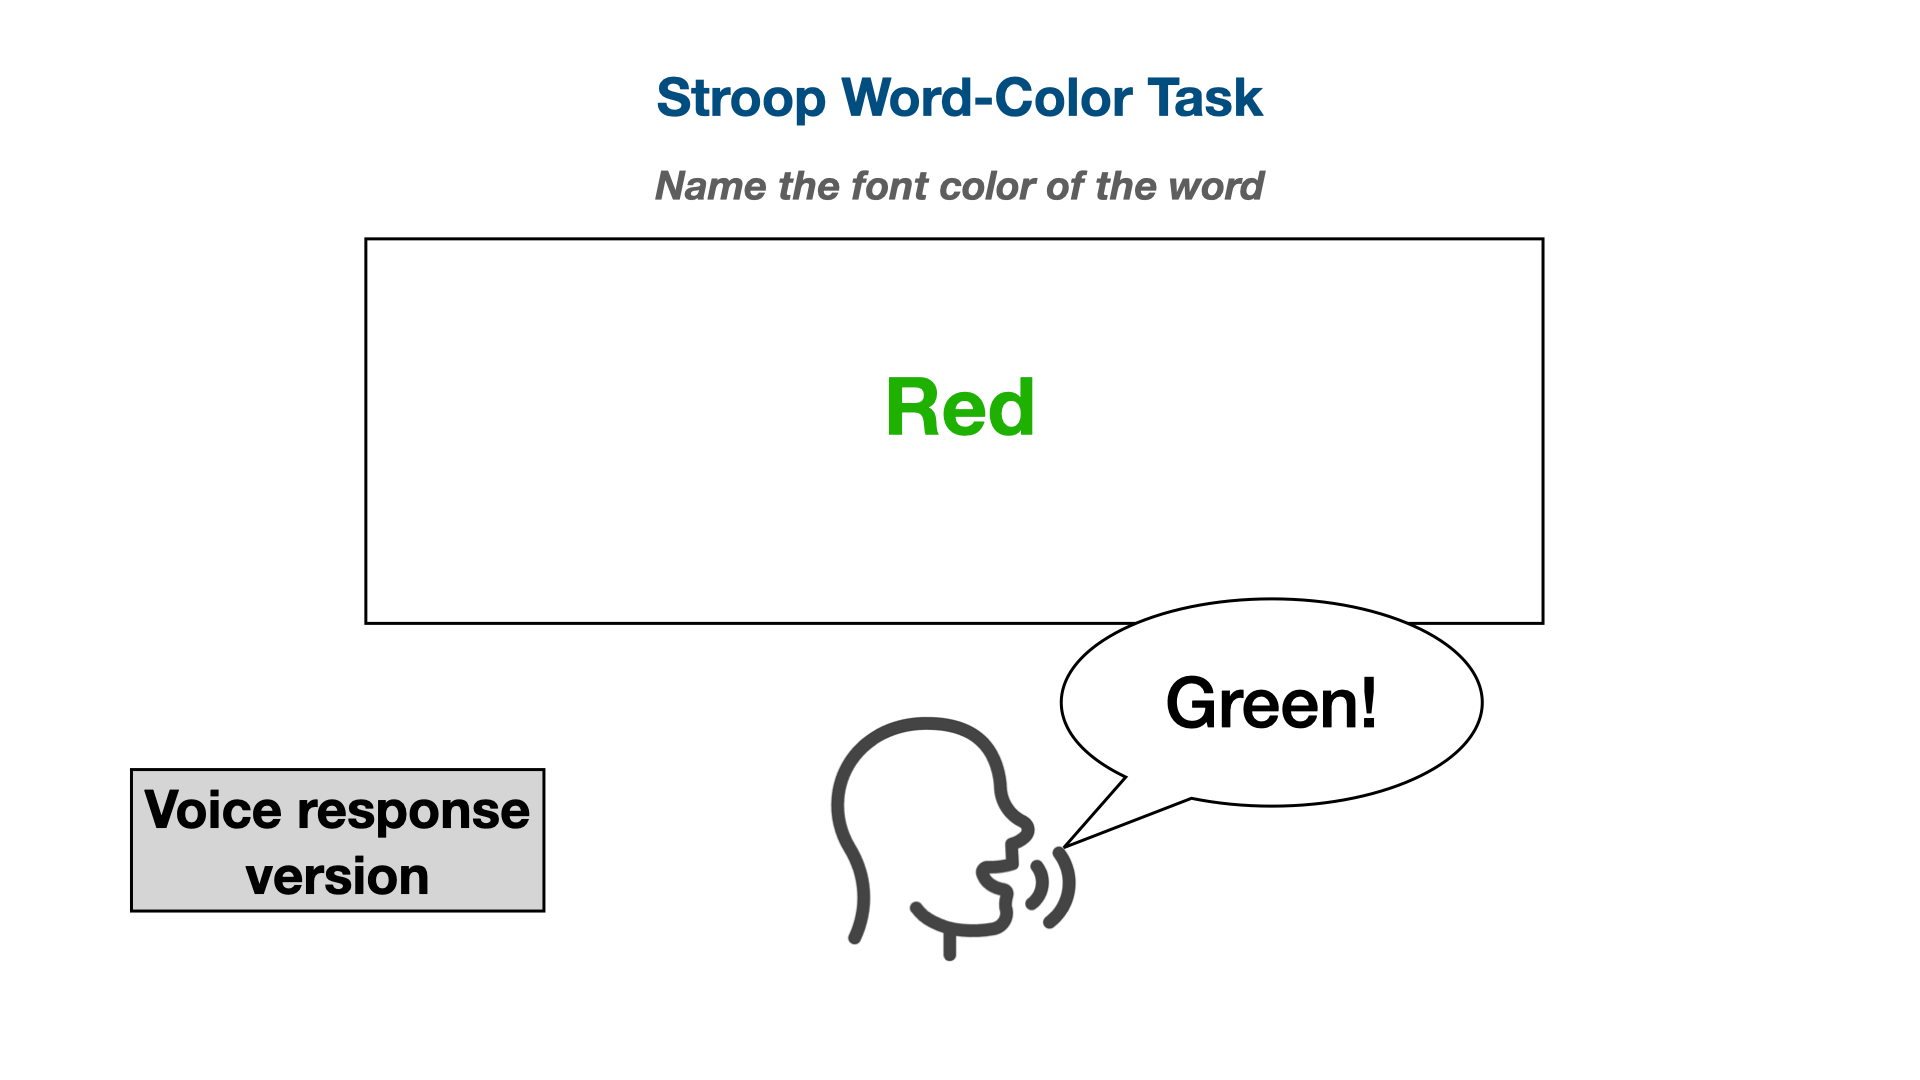 Illustration of the Stroop task using voice responses